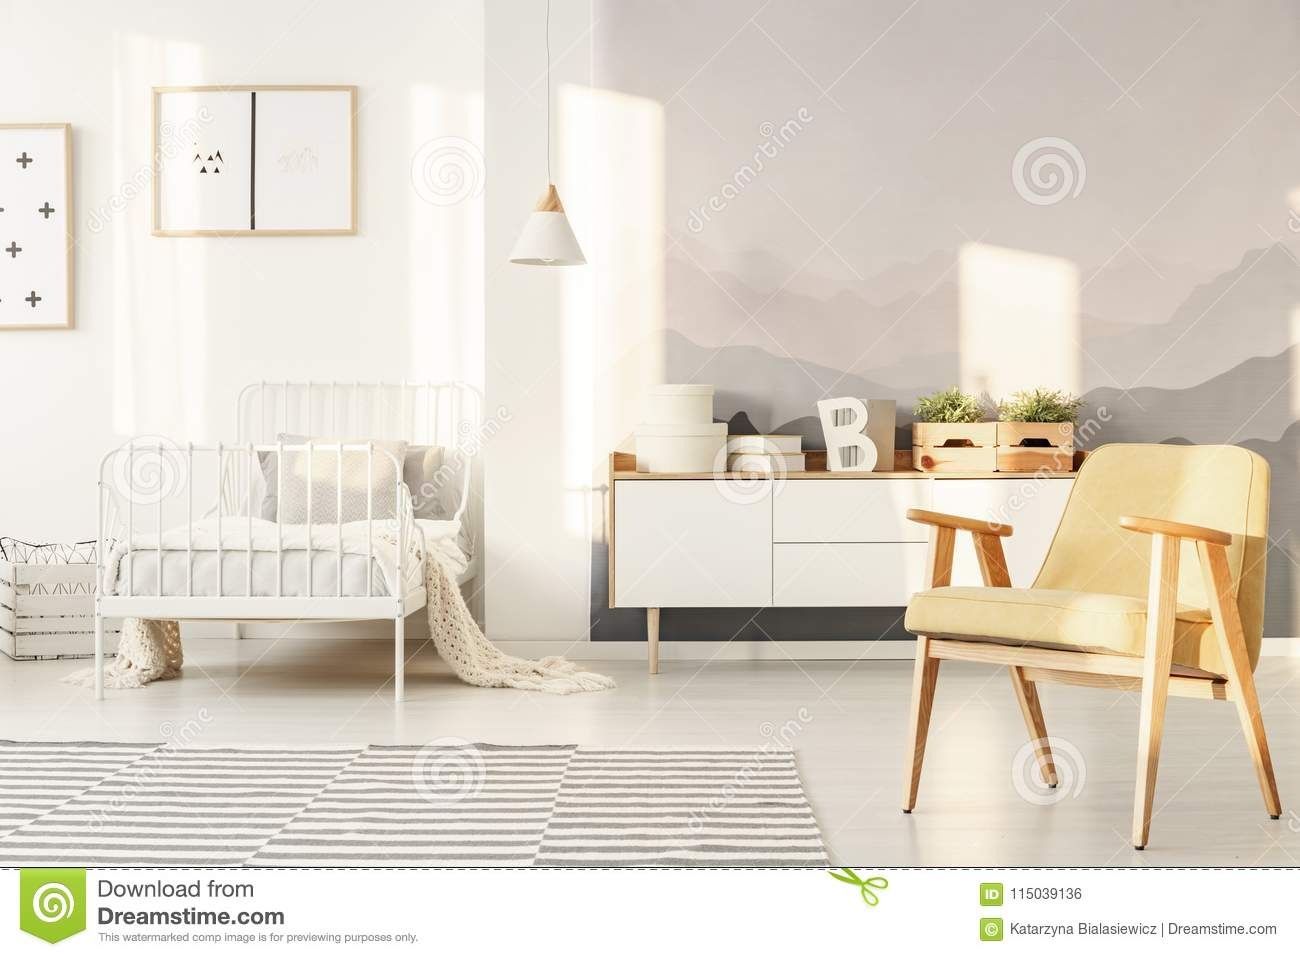 Download Wallpaper Mountain Bedroom - bright-bedroom-interior-bright-bedroom-interior-children-mountain-wallpaper-white-cupboard-decor-yellow-armchair-115039136  Graphic_619744.jpg